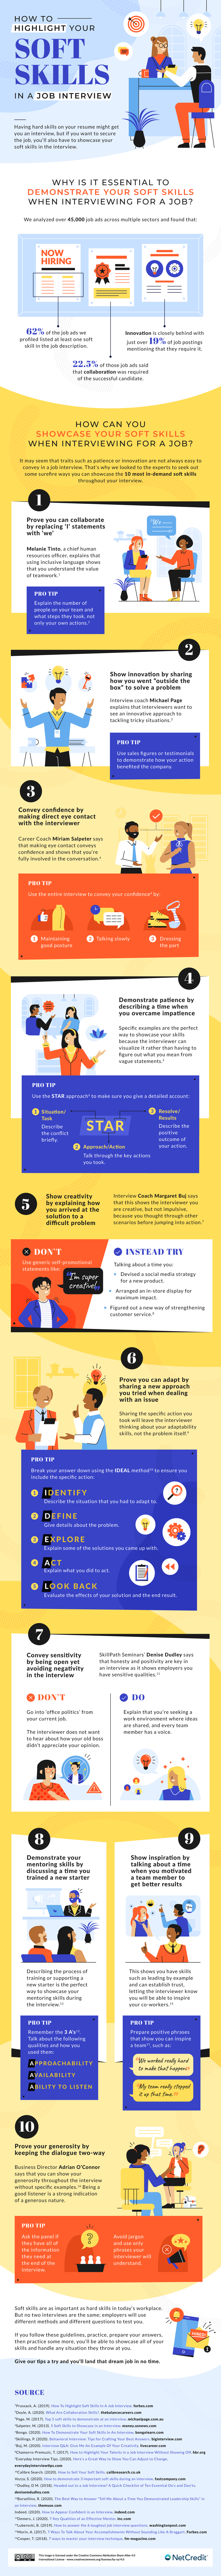 How to highlight your soft skills in a job interview